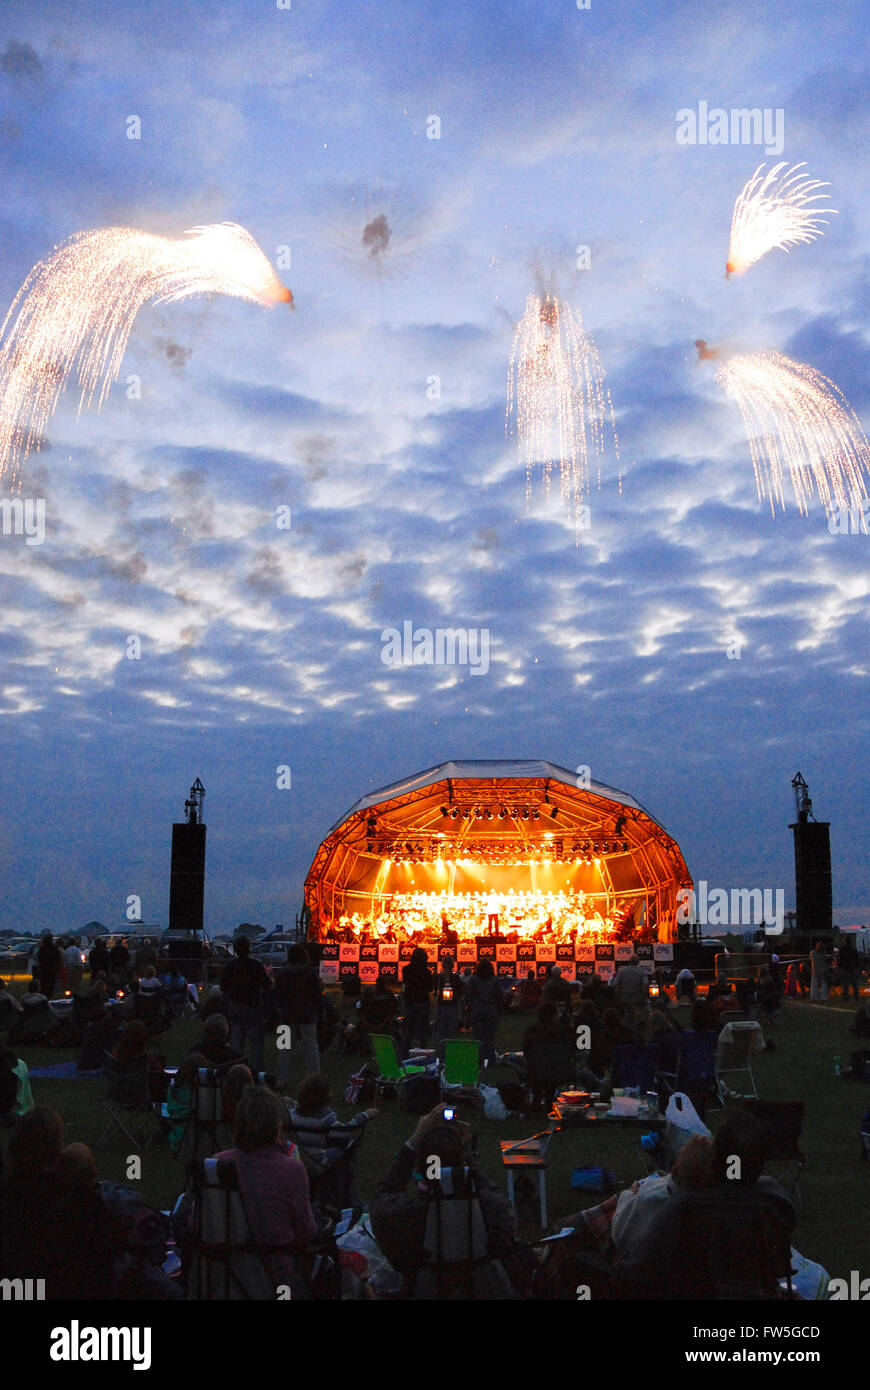 Airfield concert - fireworks at the Sywell Aerodrome, Northamptonshire, UK. - Stock Image